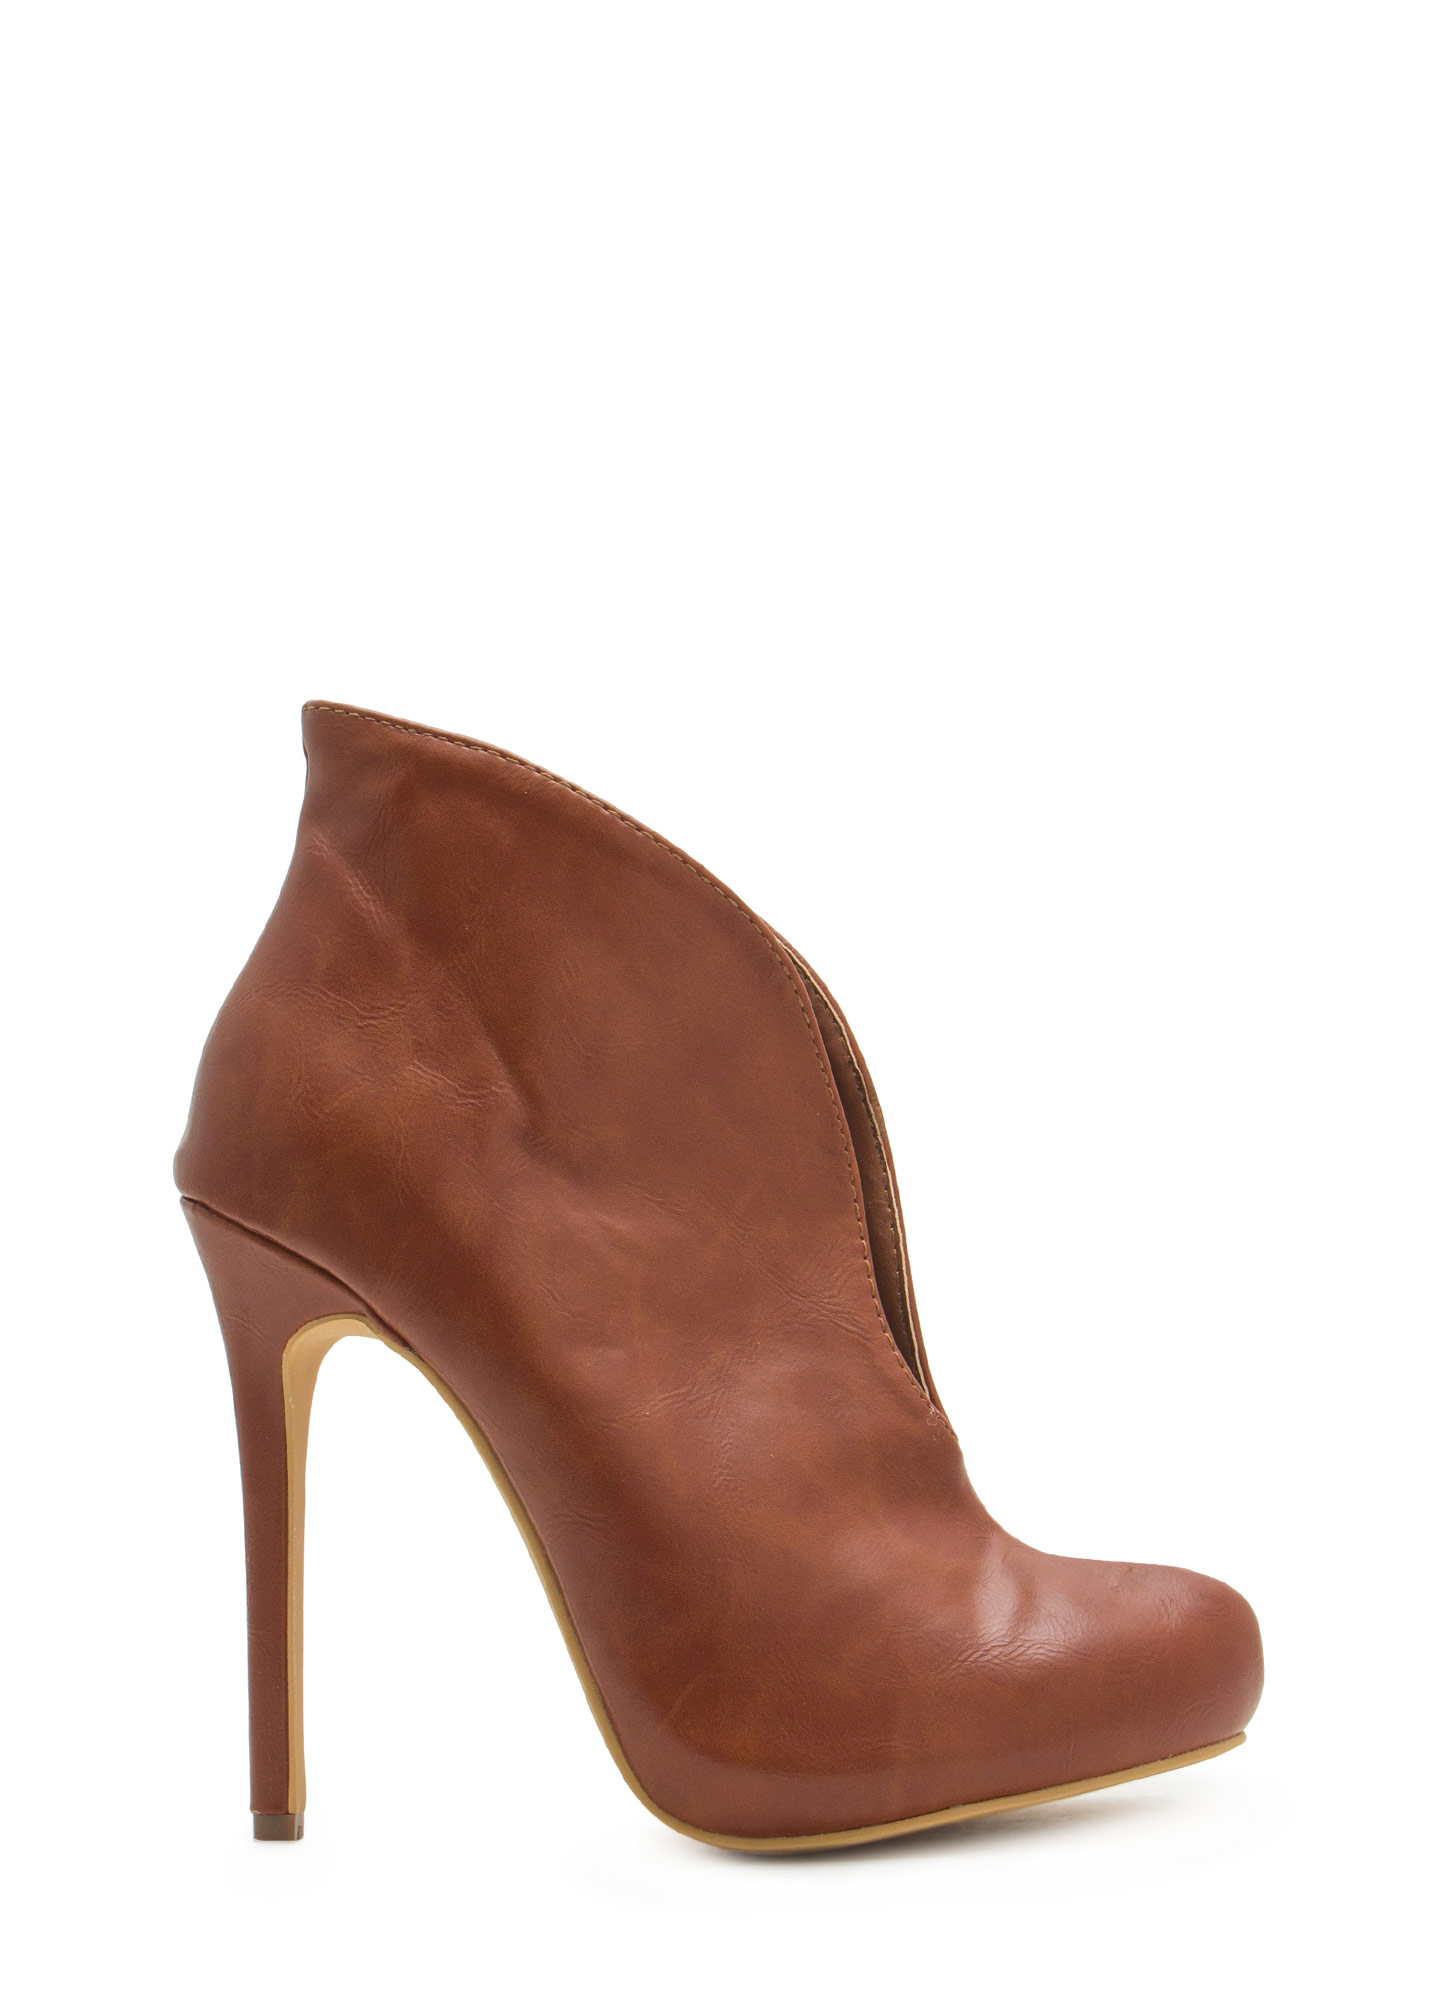 Take The Plunge Booties TAN